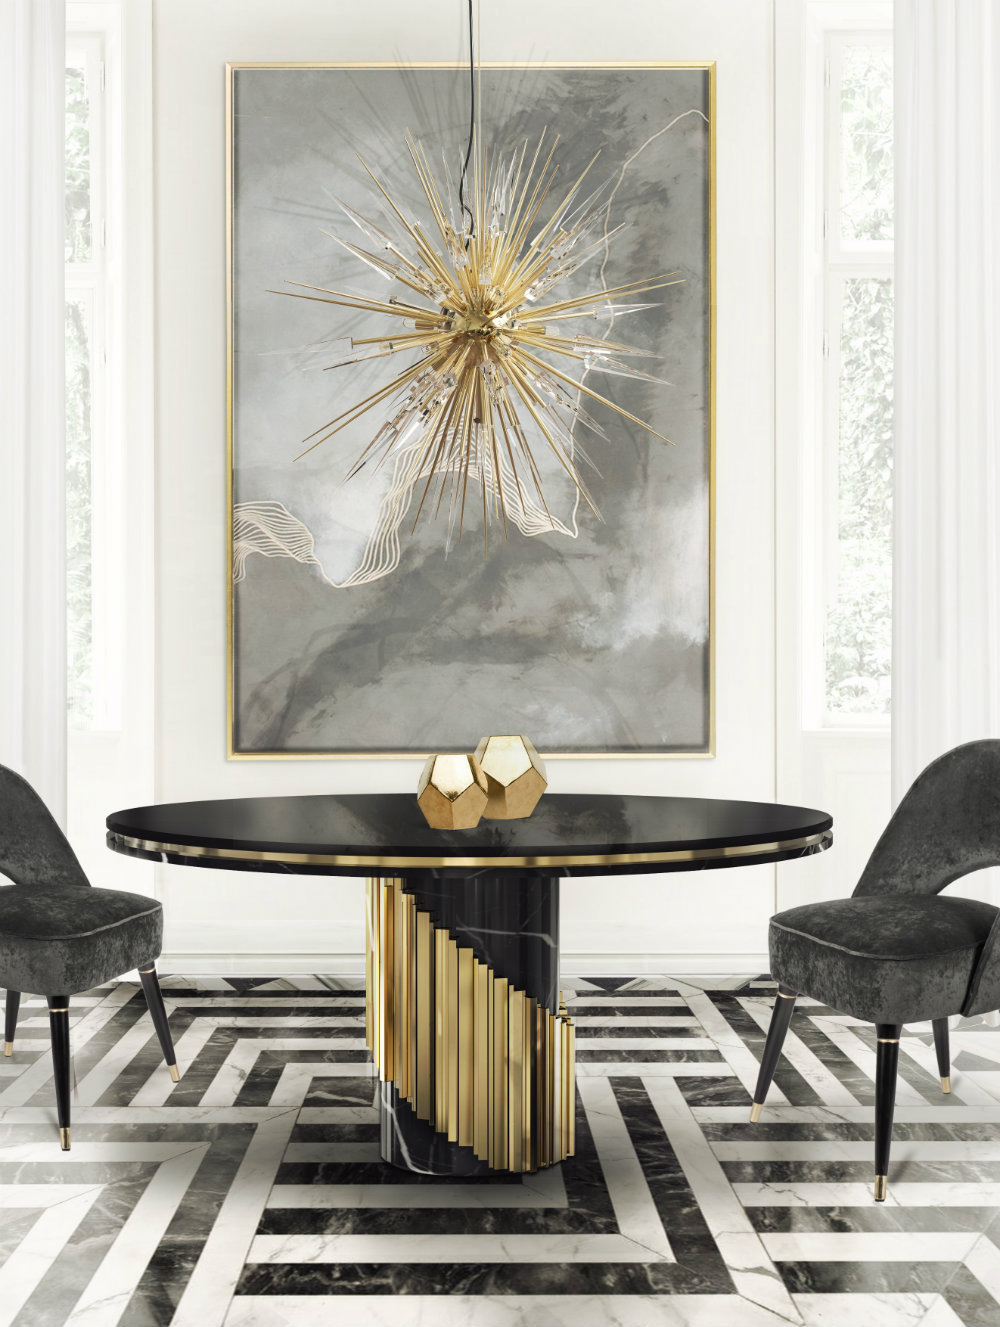 7 Summer-Ready Luxury Dining Rooms To Inspire You 07 luxury dining rooms 7 Summer-Ready Luxury Dining Rooms To Inspire You 7 Summer Ready Luxury Dining Rooms To Inspire You 07